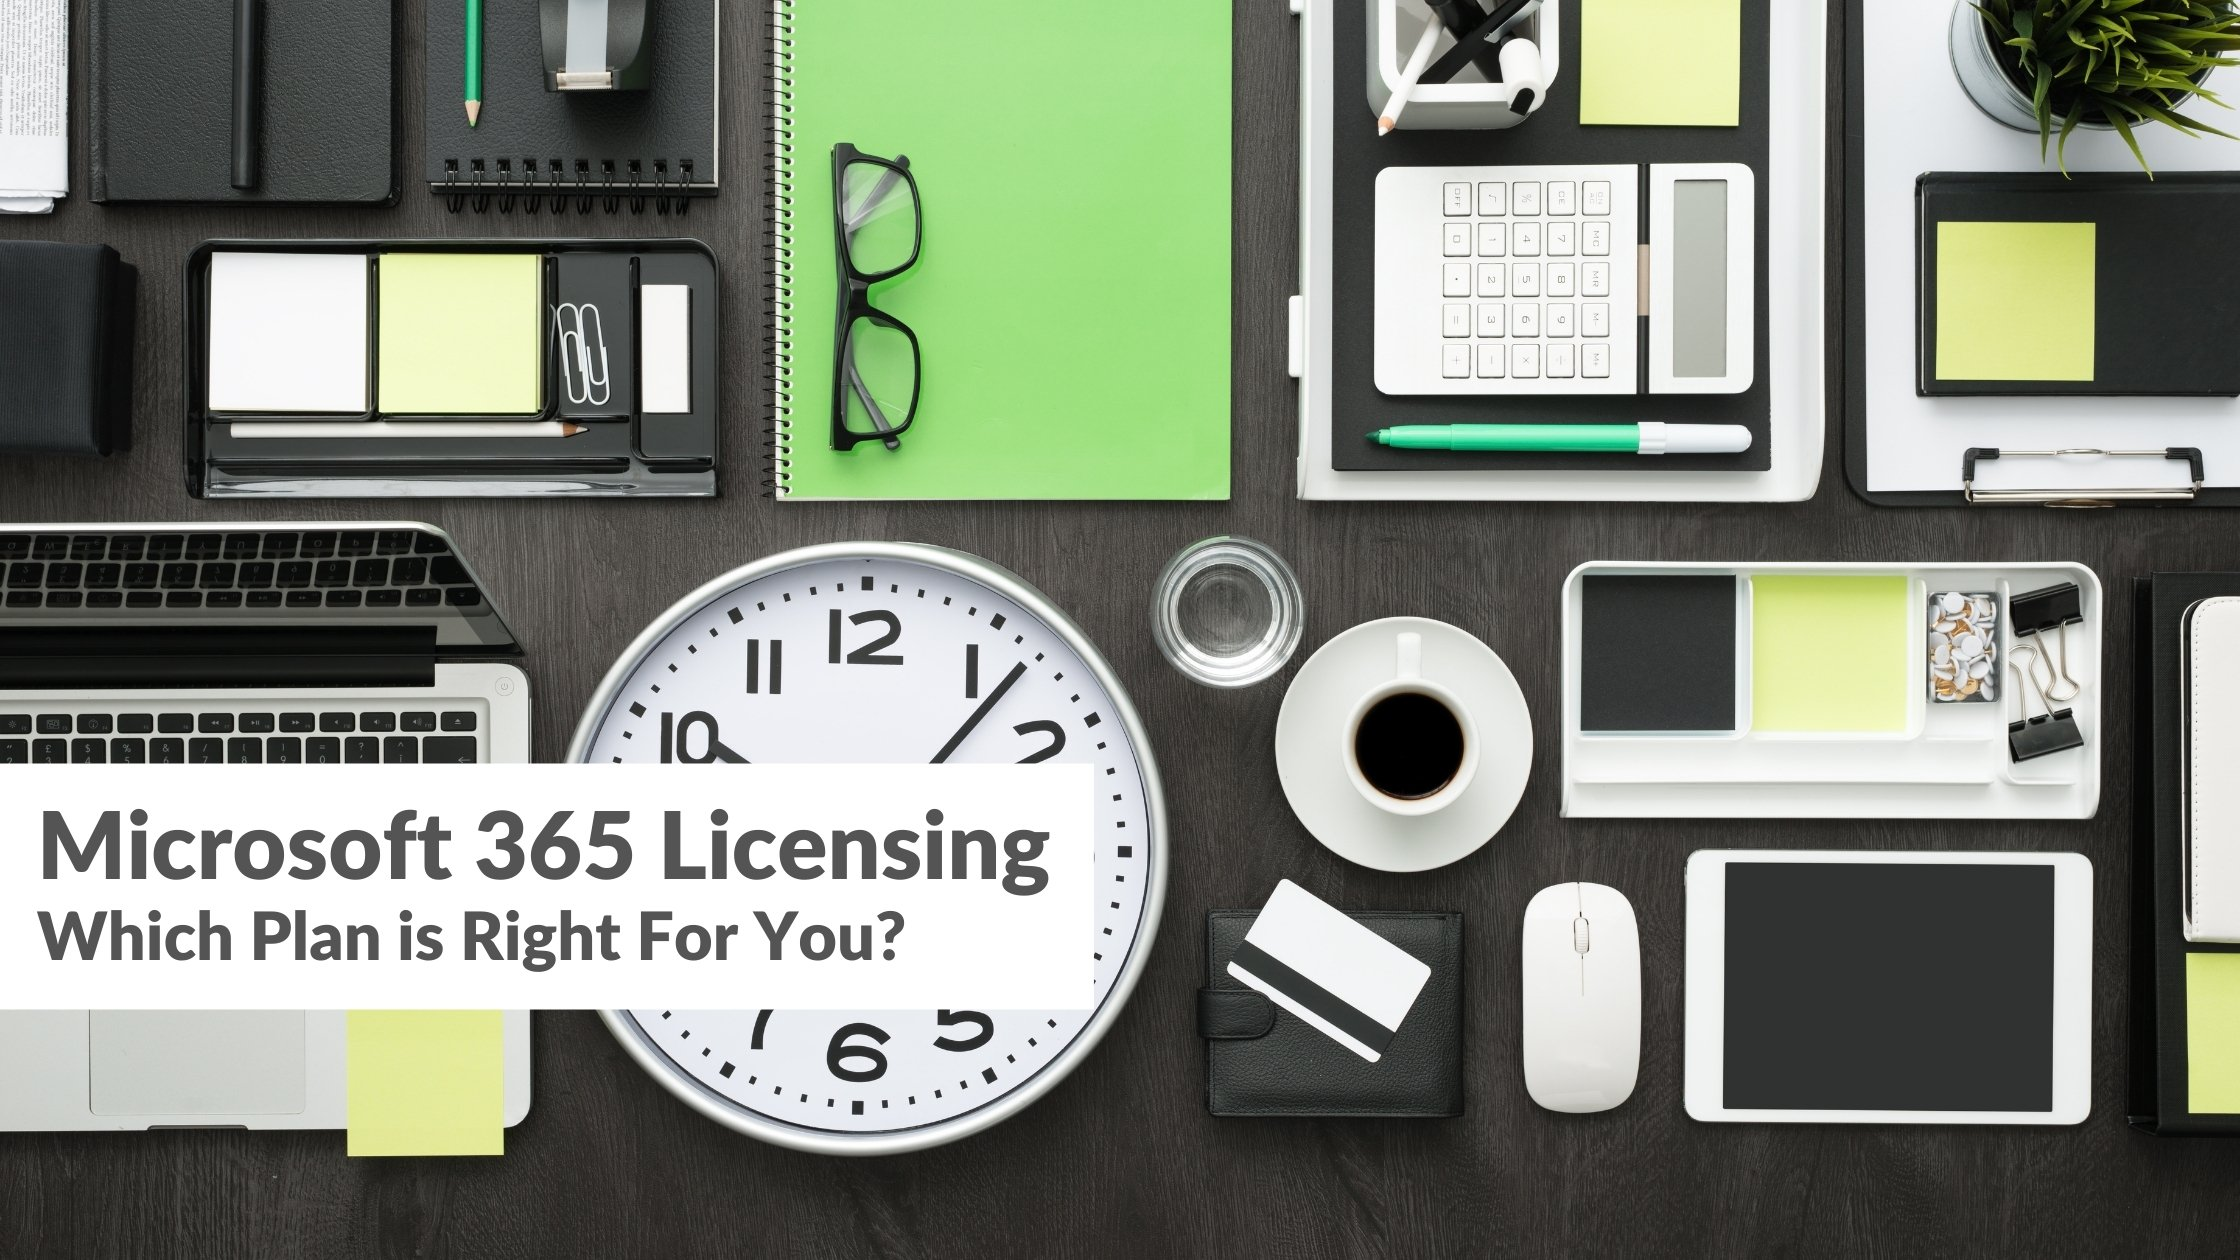 Microsoft 365 Licensing | Which Plan Is Right For You?